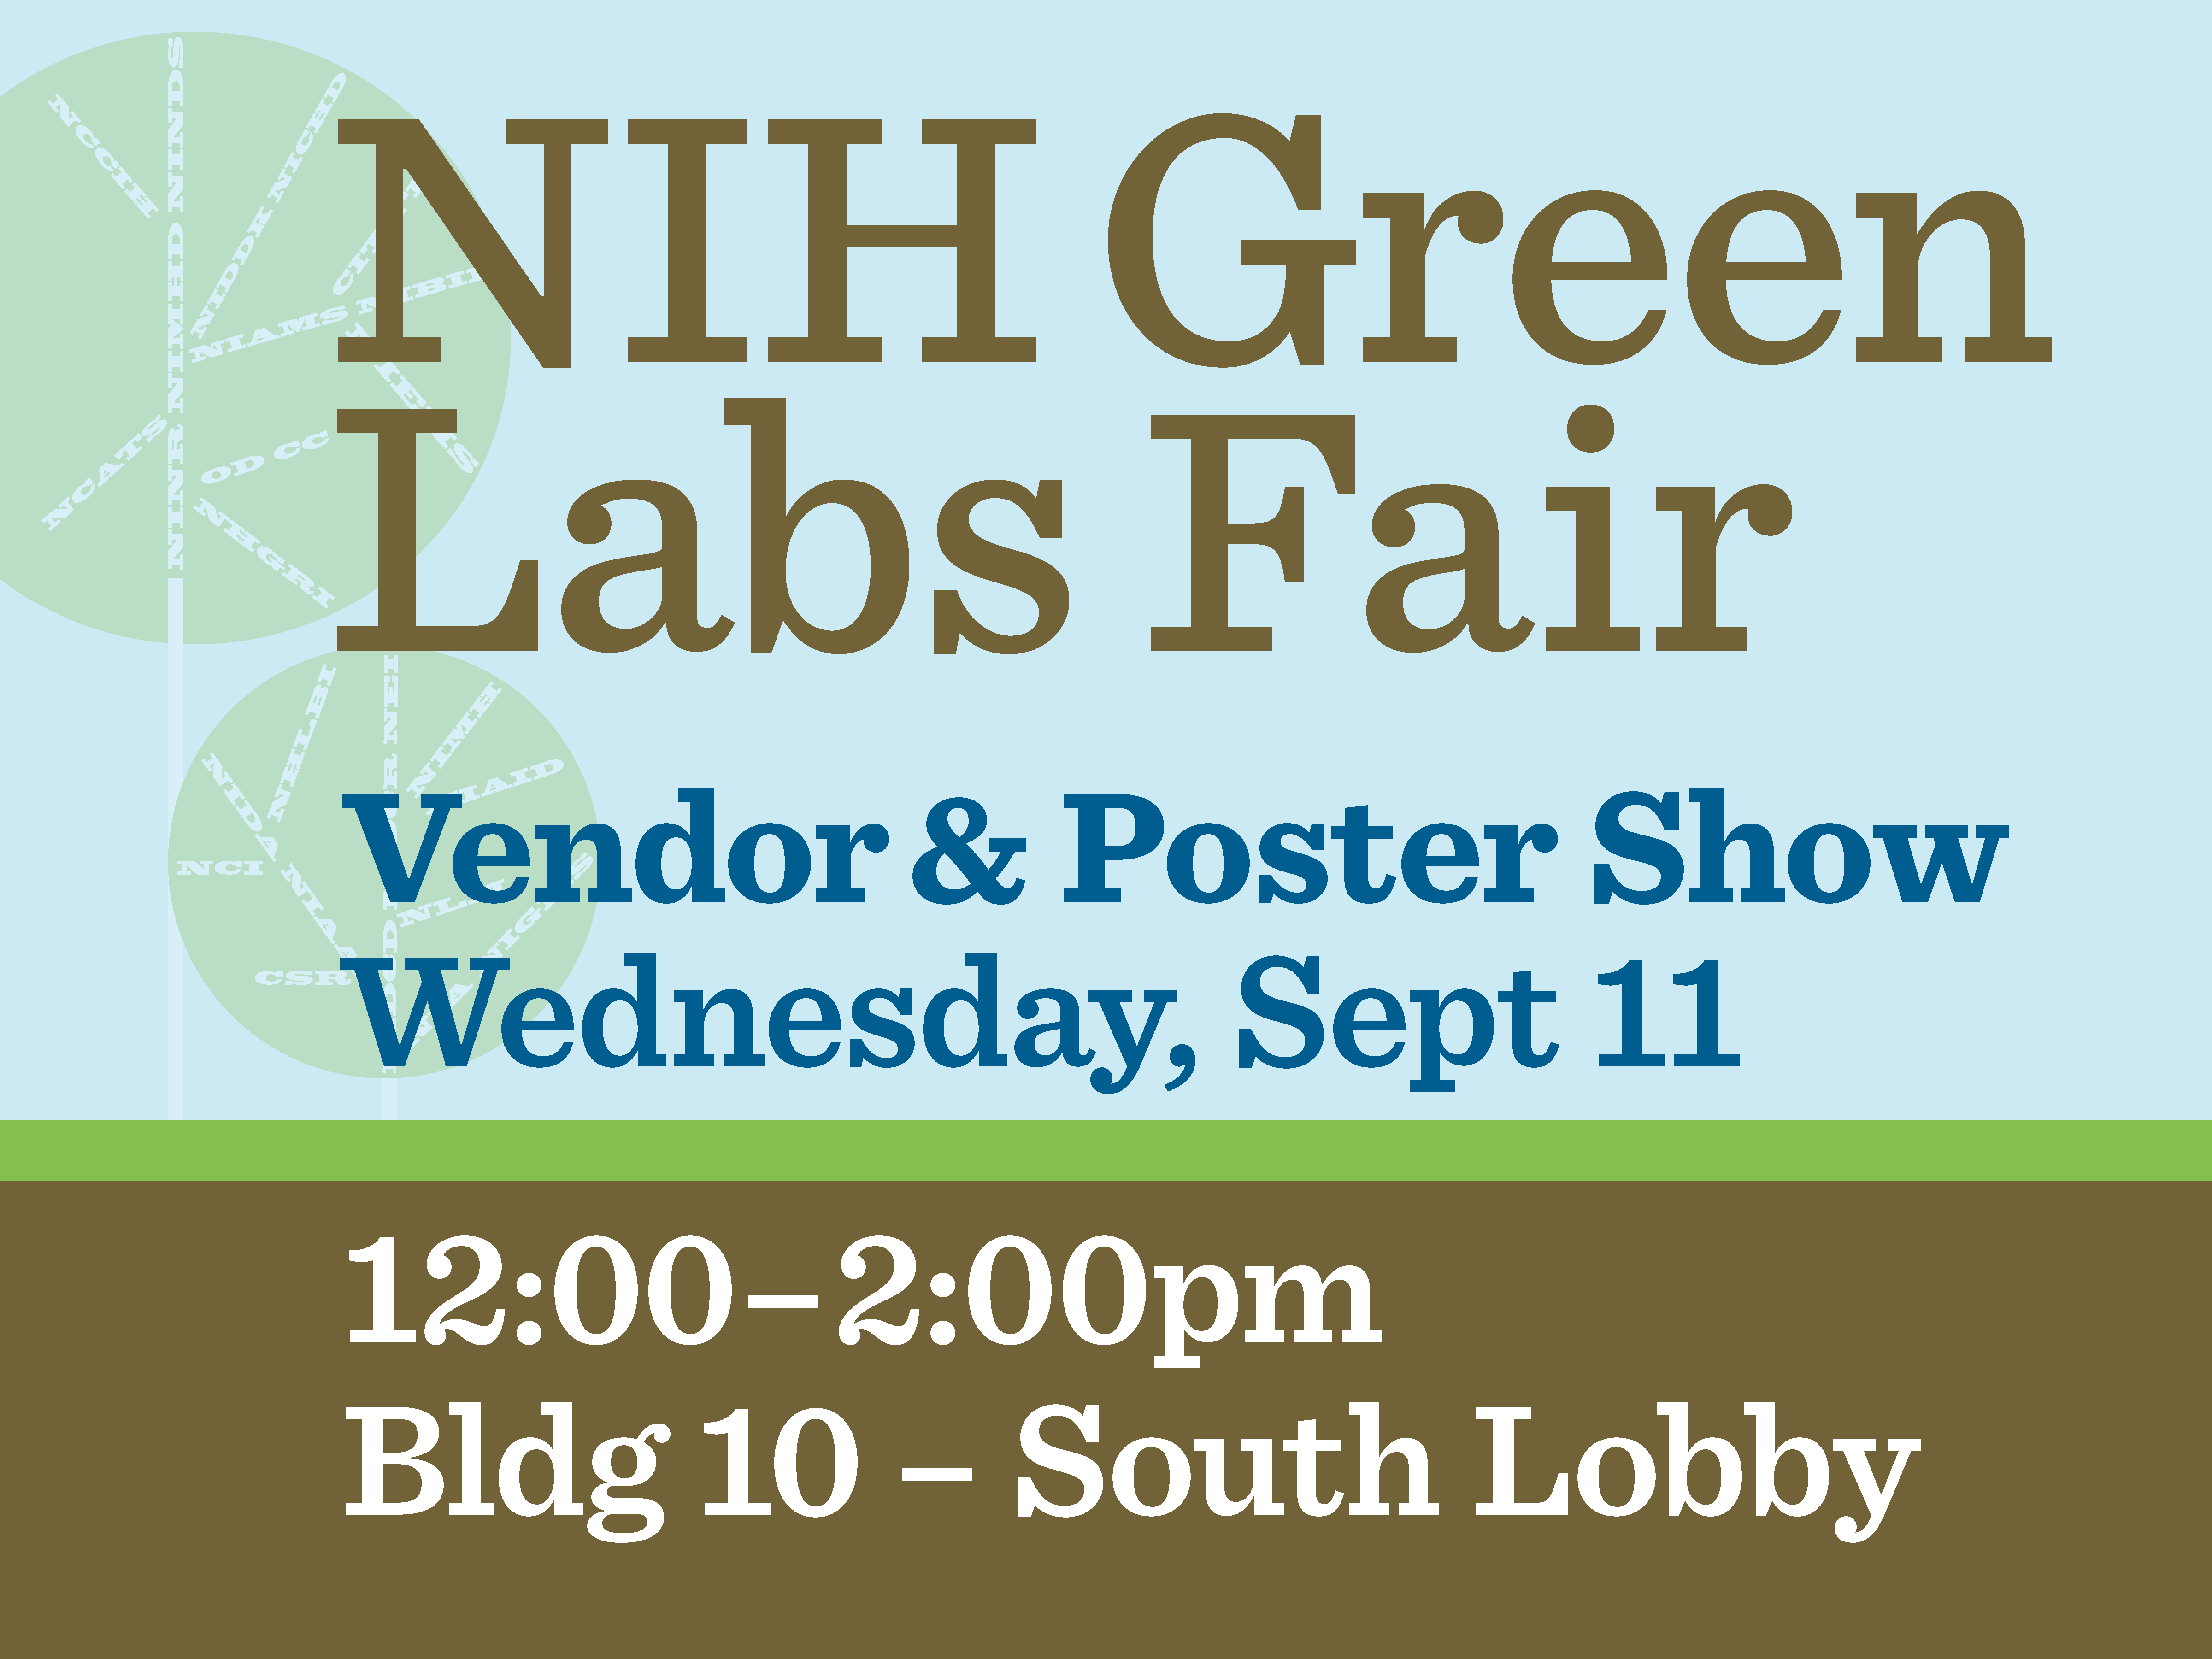 ORF_18x24Hstake_GreenLabsFair 2019_rnd1a.png